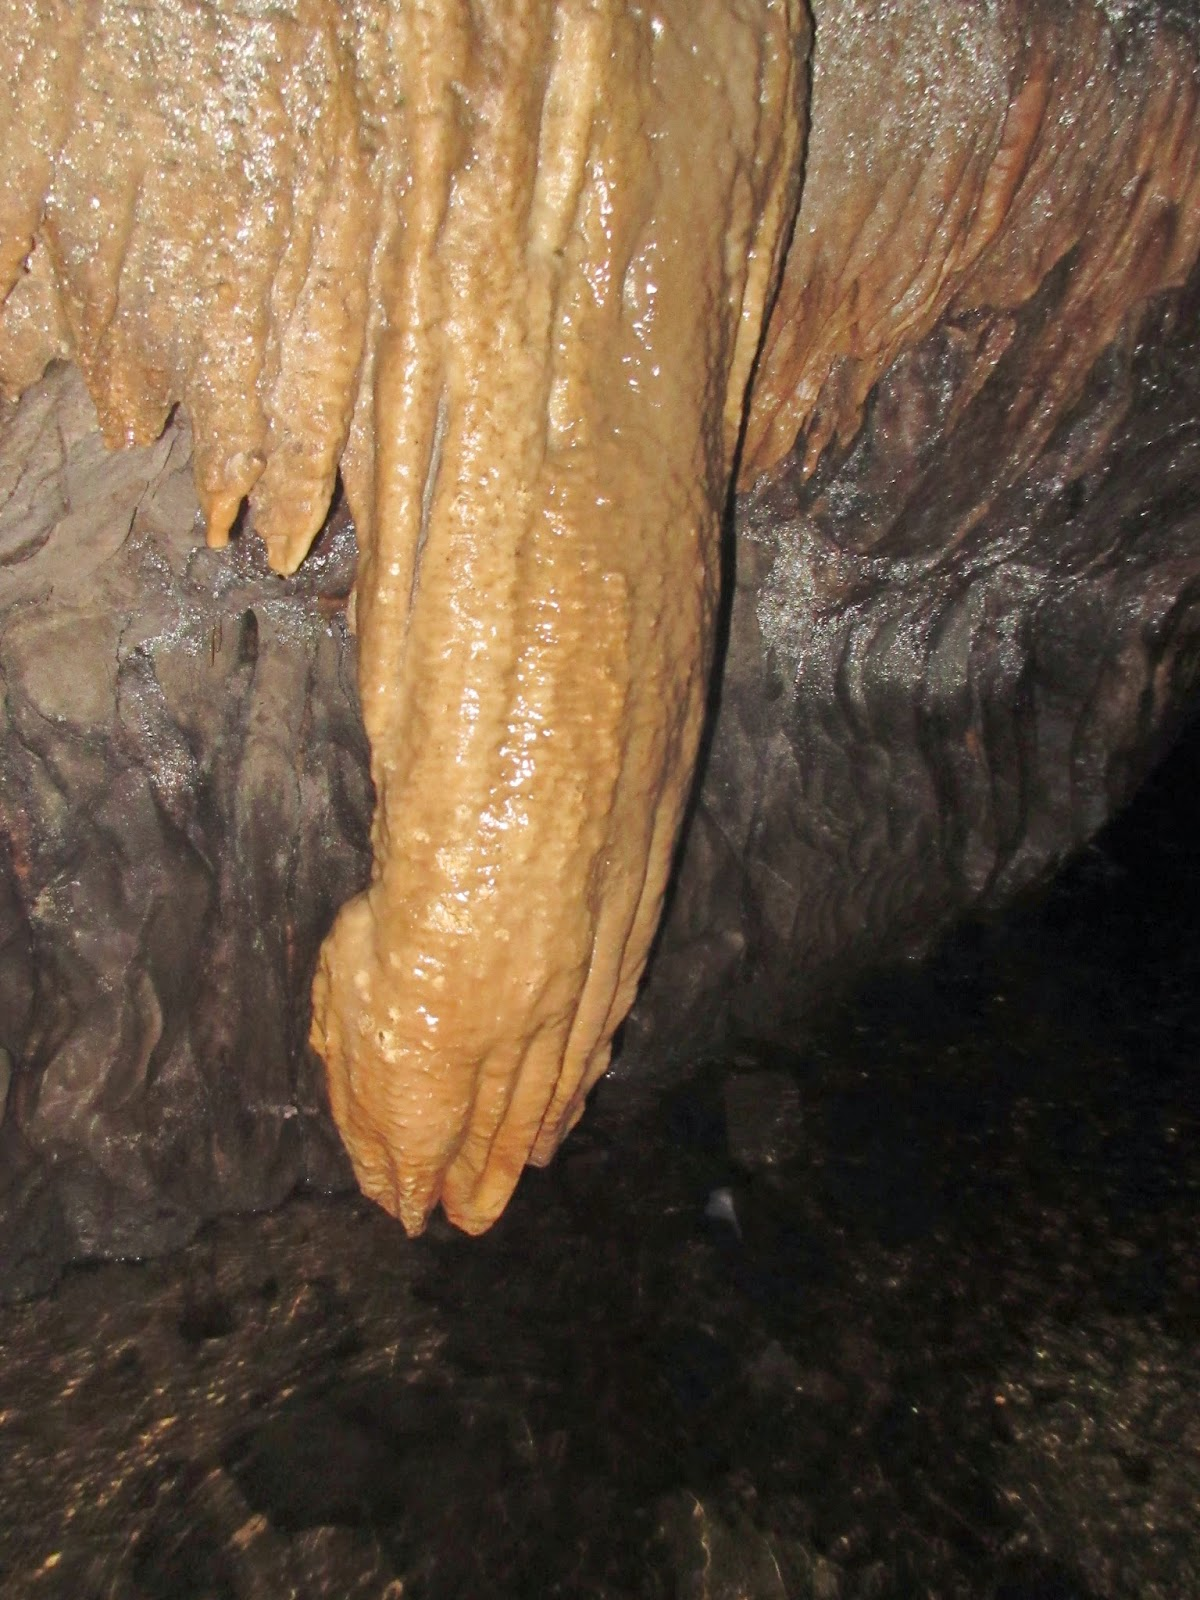 The 'Giant's Hand': a bizarre flowstone formation in the upper reaches of the cave. Stephen Oldfield